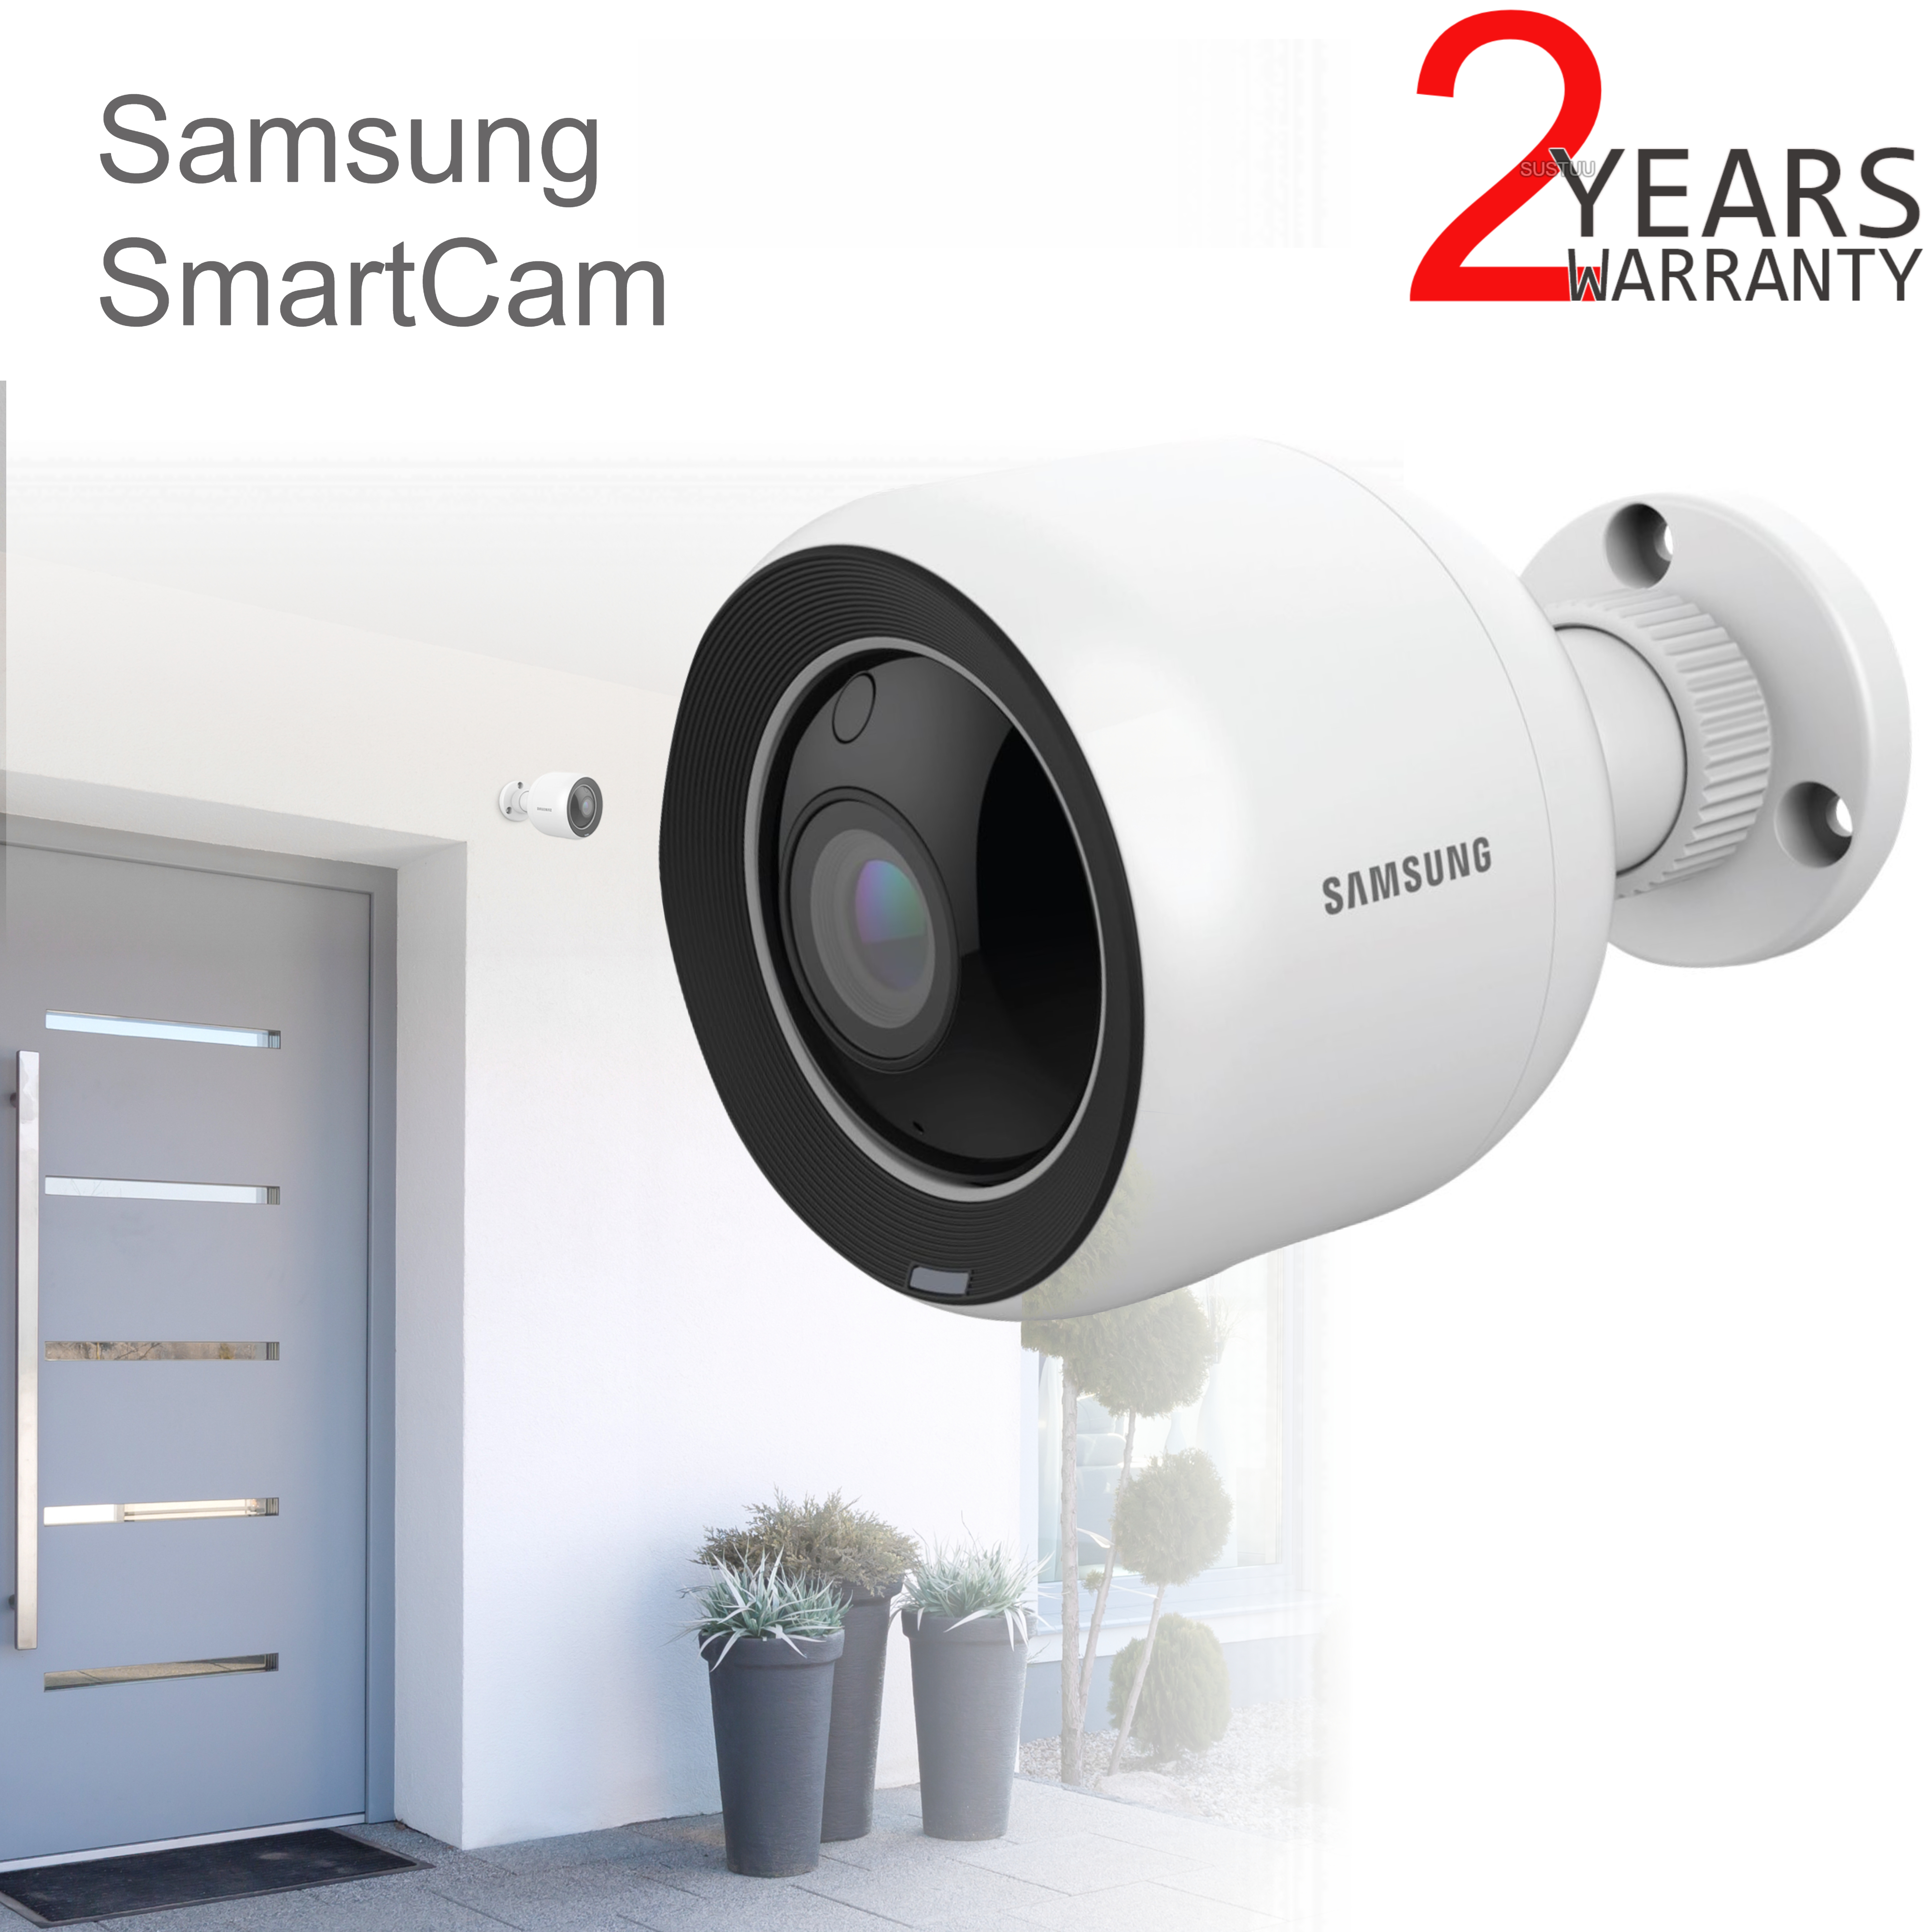 Samsung SNH-V6430BNH/UK SmartCam 1080p Full HD WiFi/ PoE Indoor & Outdoor Camera | Weather-Resistant